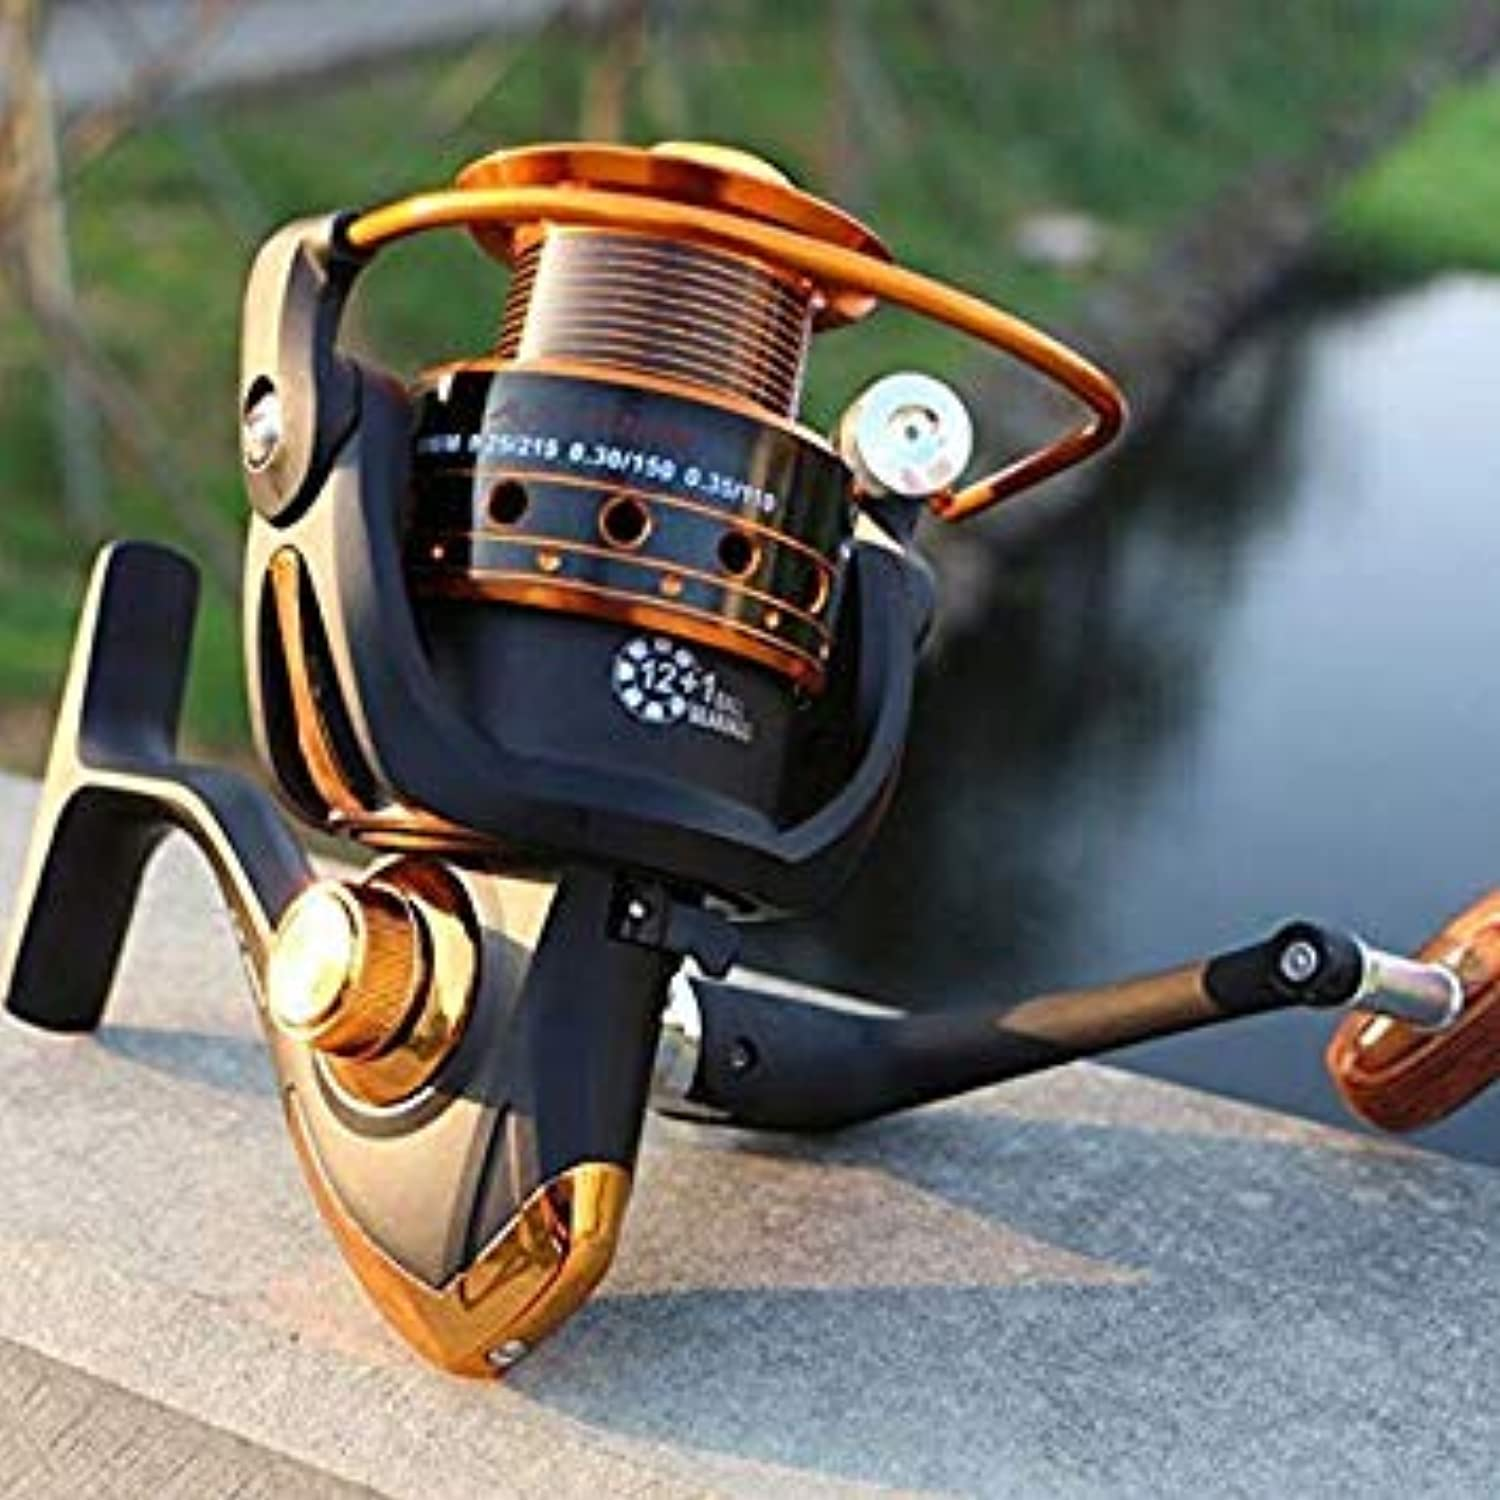 GEOPONICS Spinning Reel 12+1 Ball Bearing 5.5 1 Saltwater Metal Fishing Reel AX30008000 color AX4000